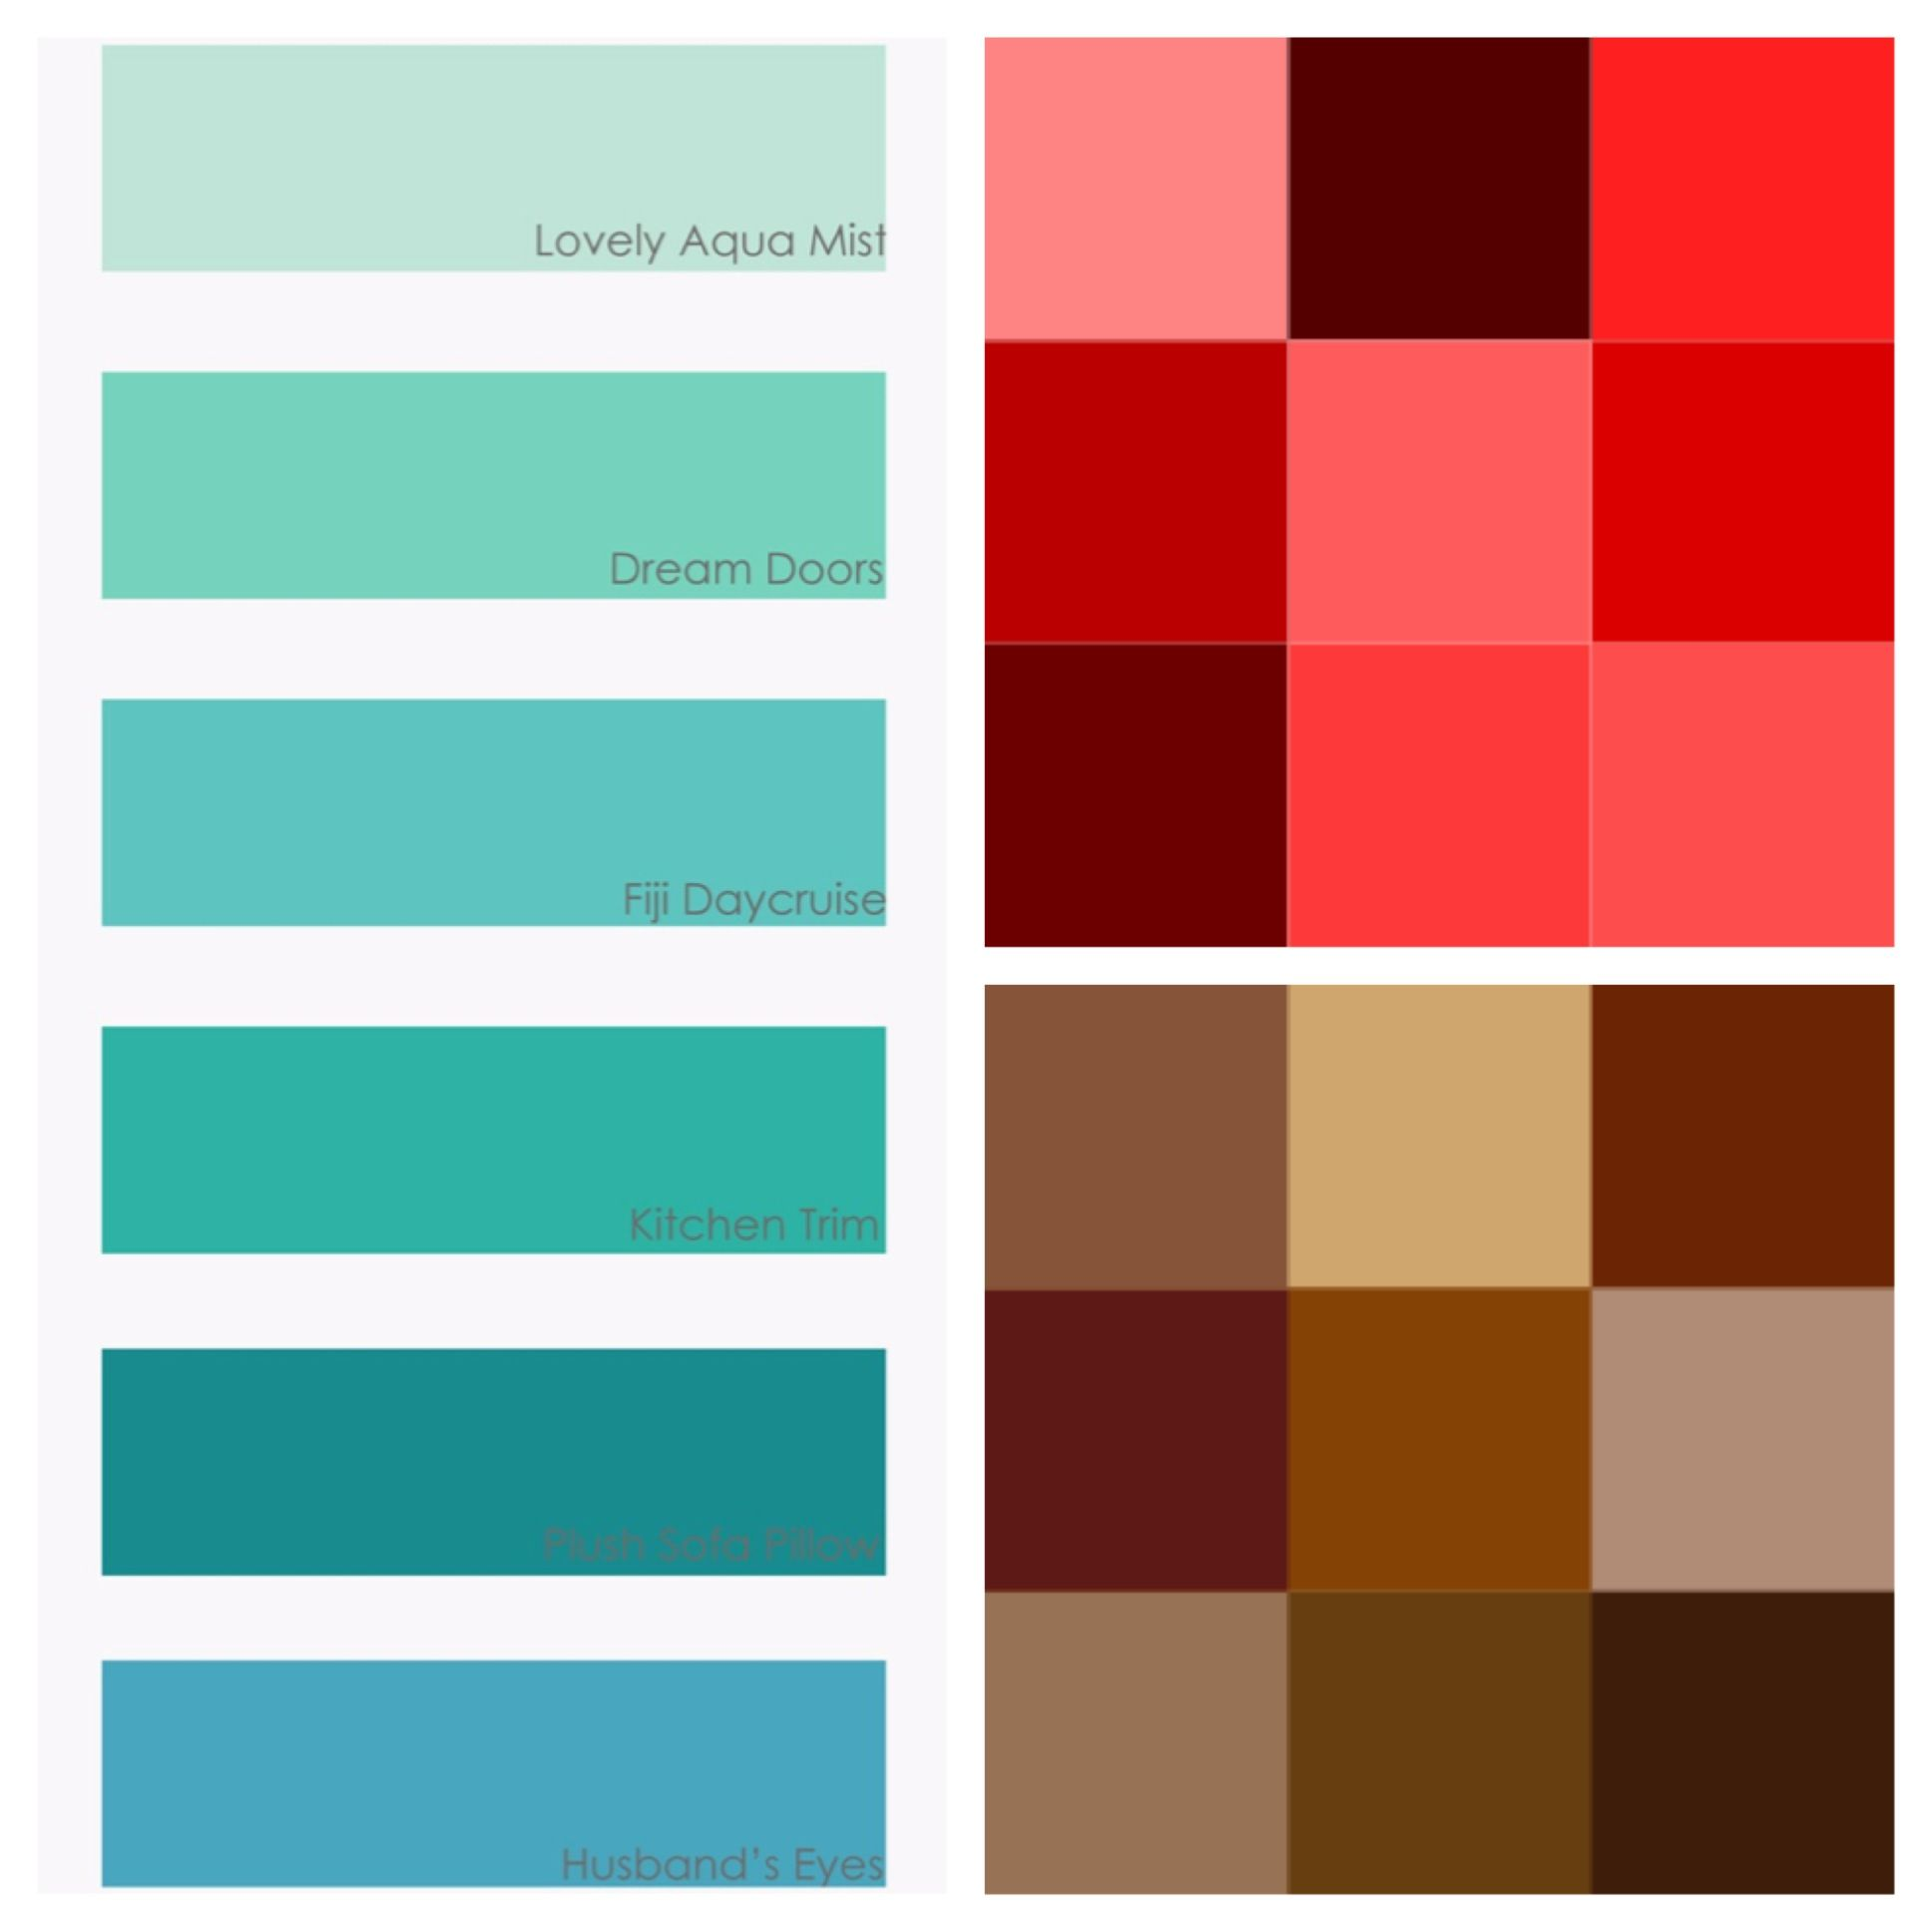 Turquoise Red And Tan Color Scheme For House I Just Like The Tans